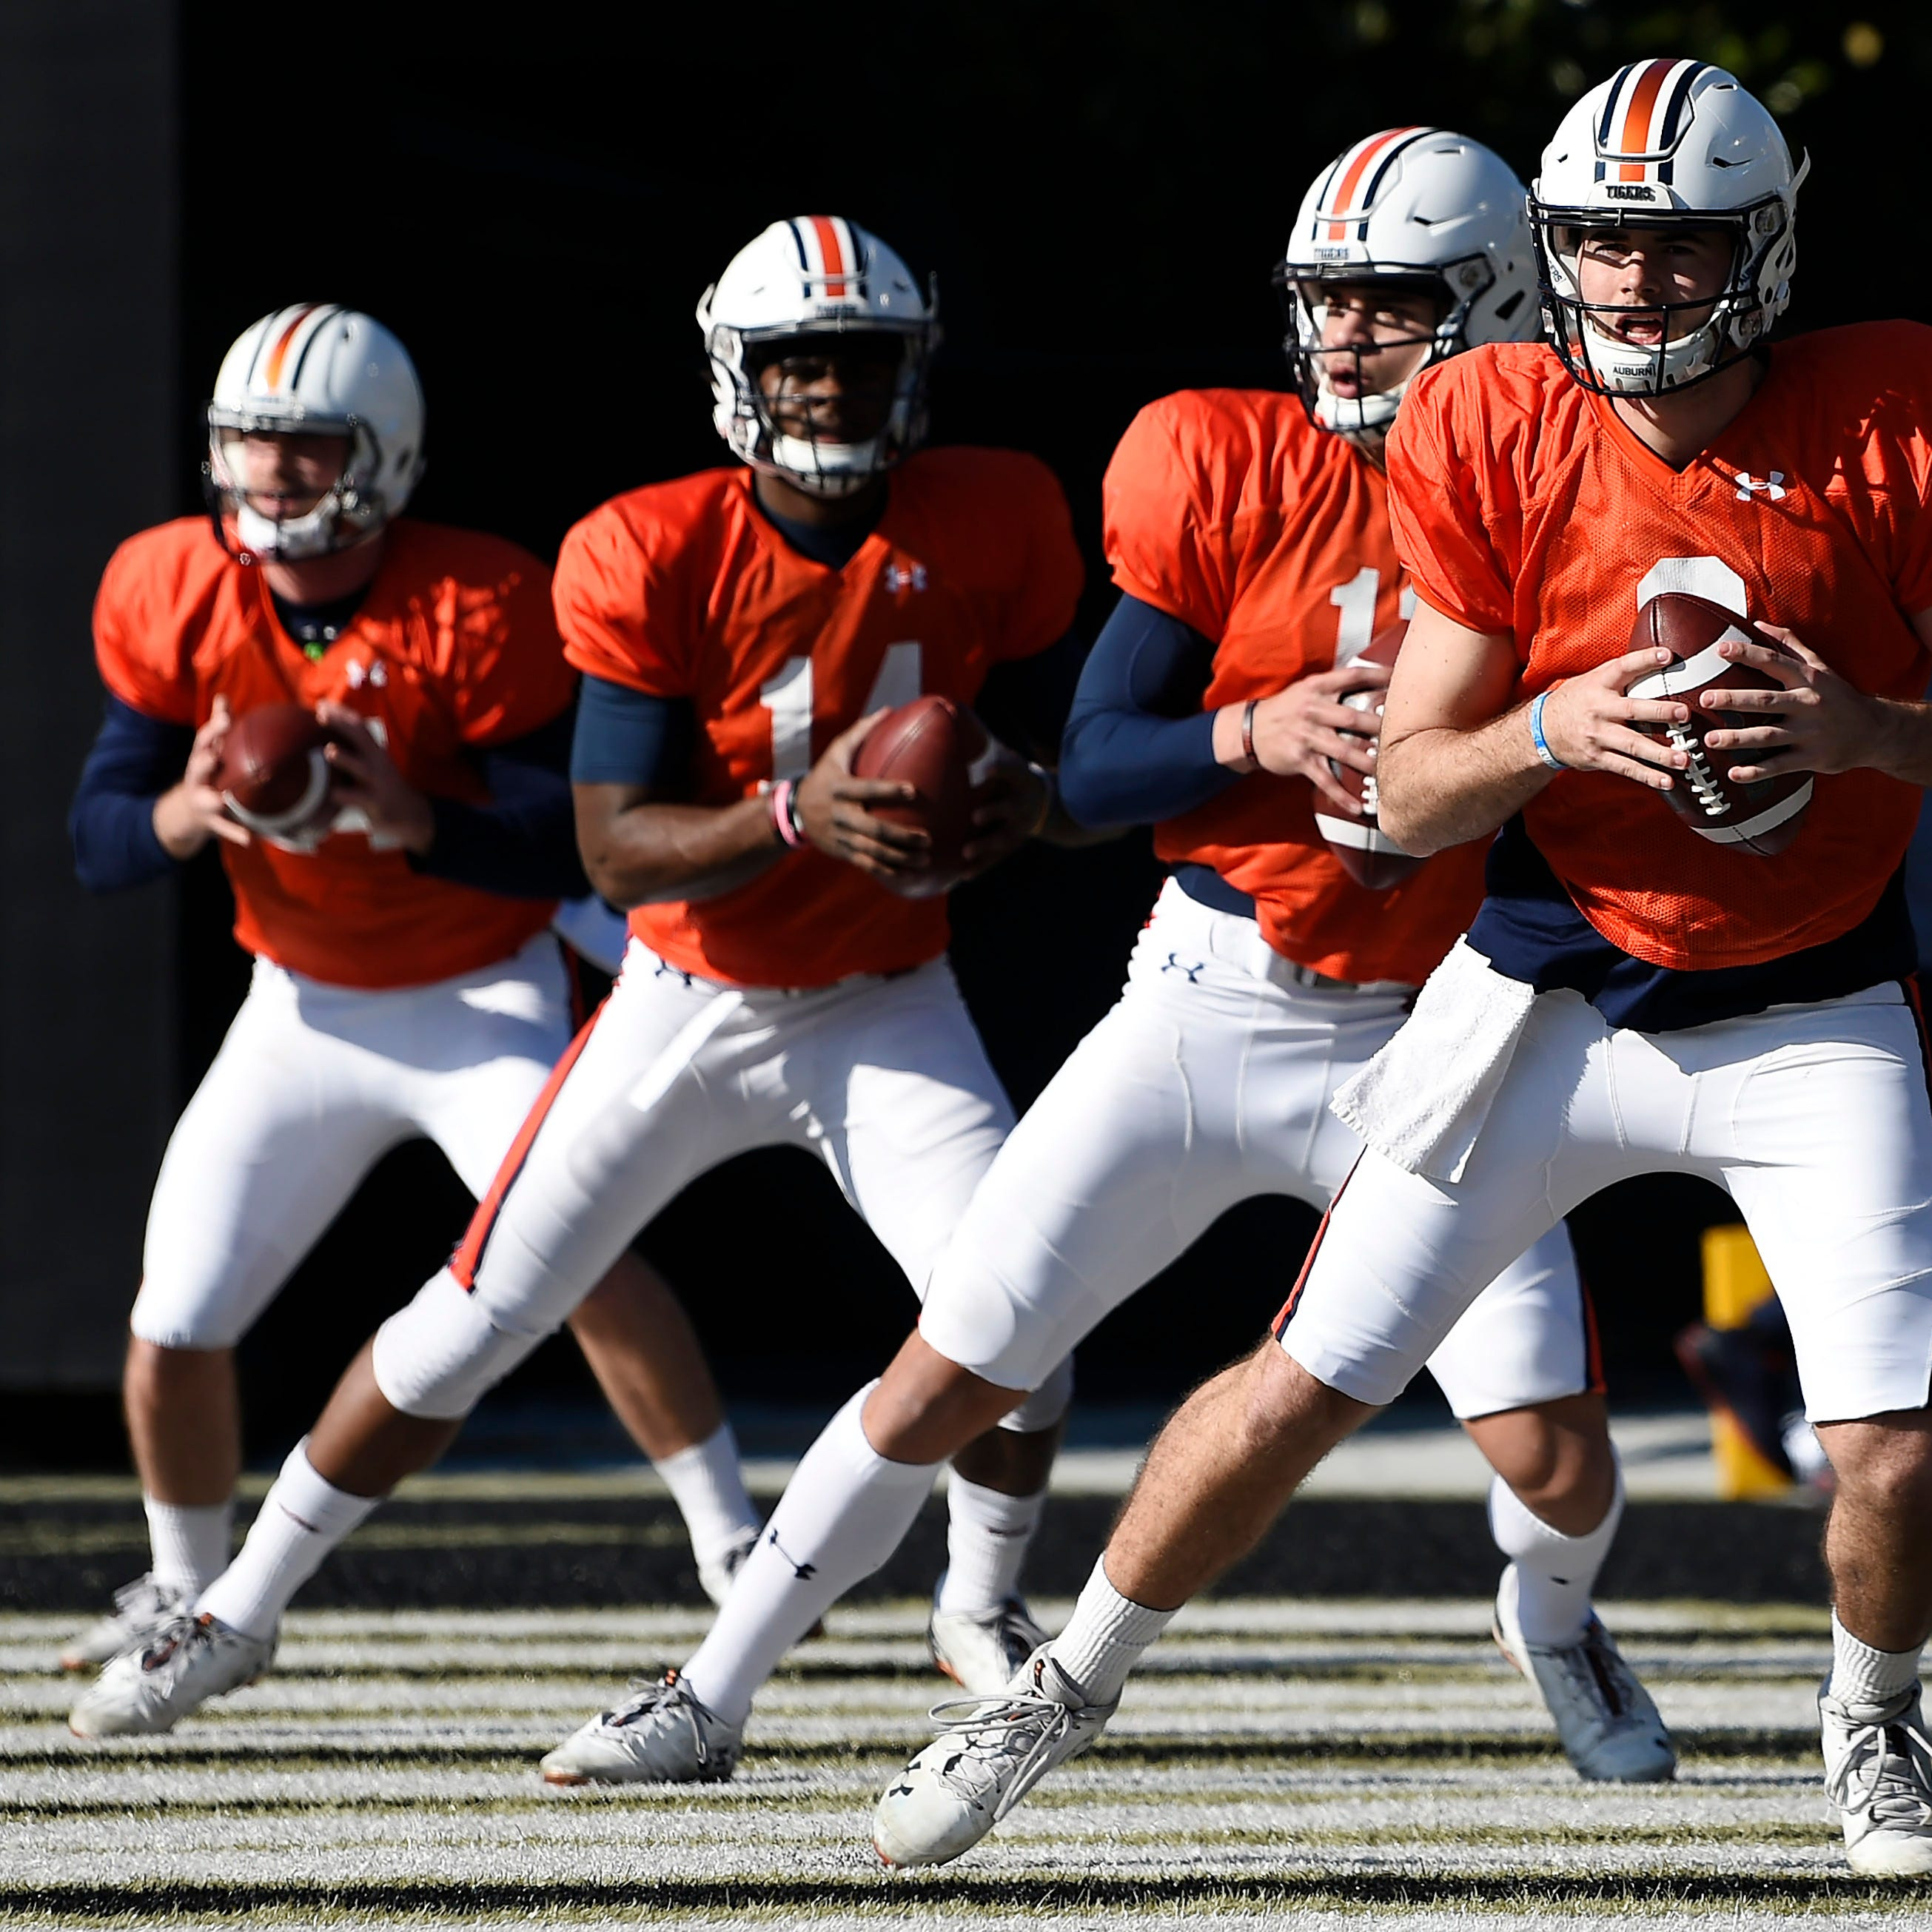 All signs point to Auburn starting a high school signee at quarterback in 2019